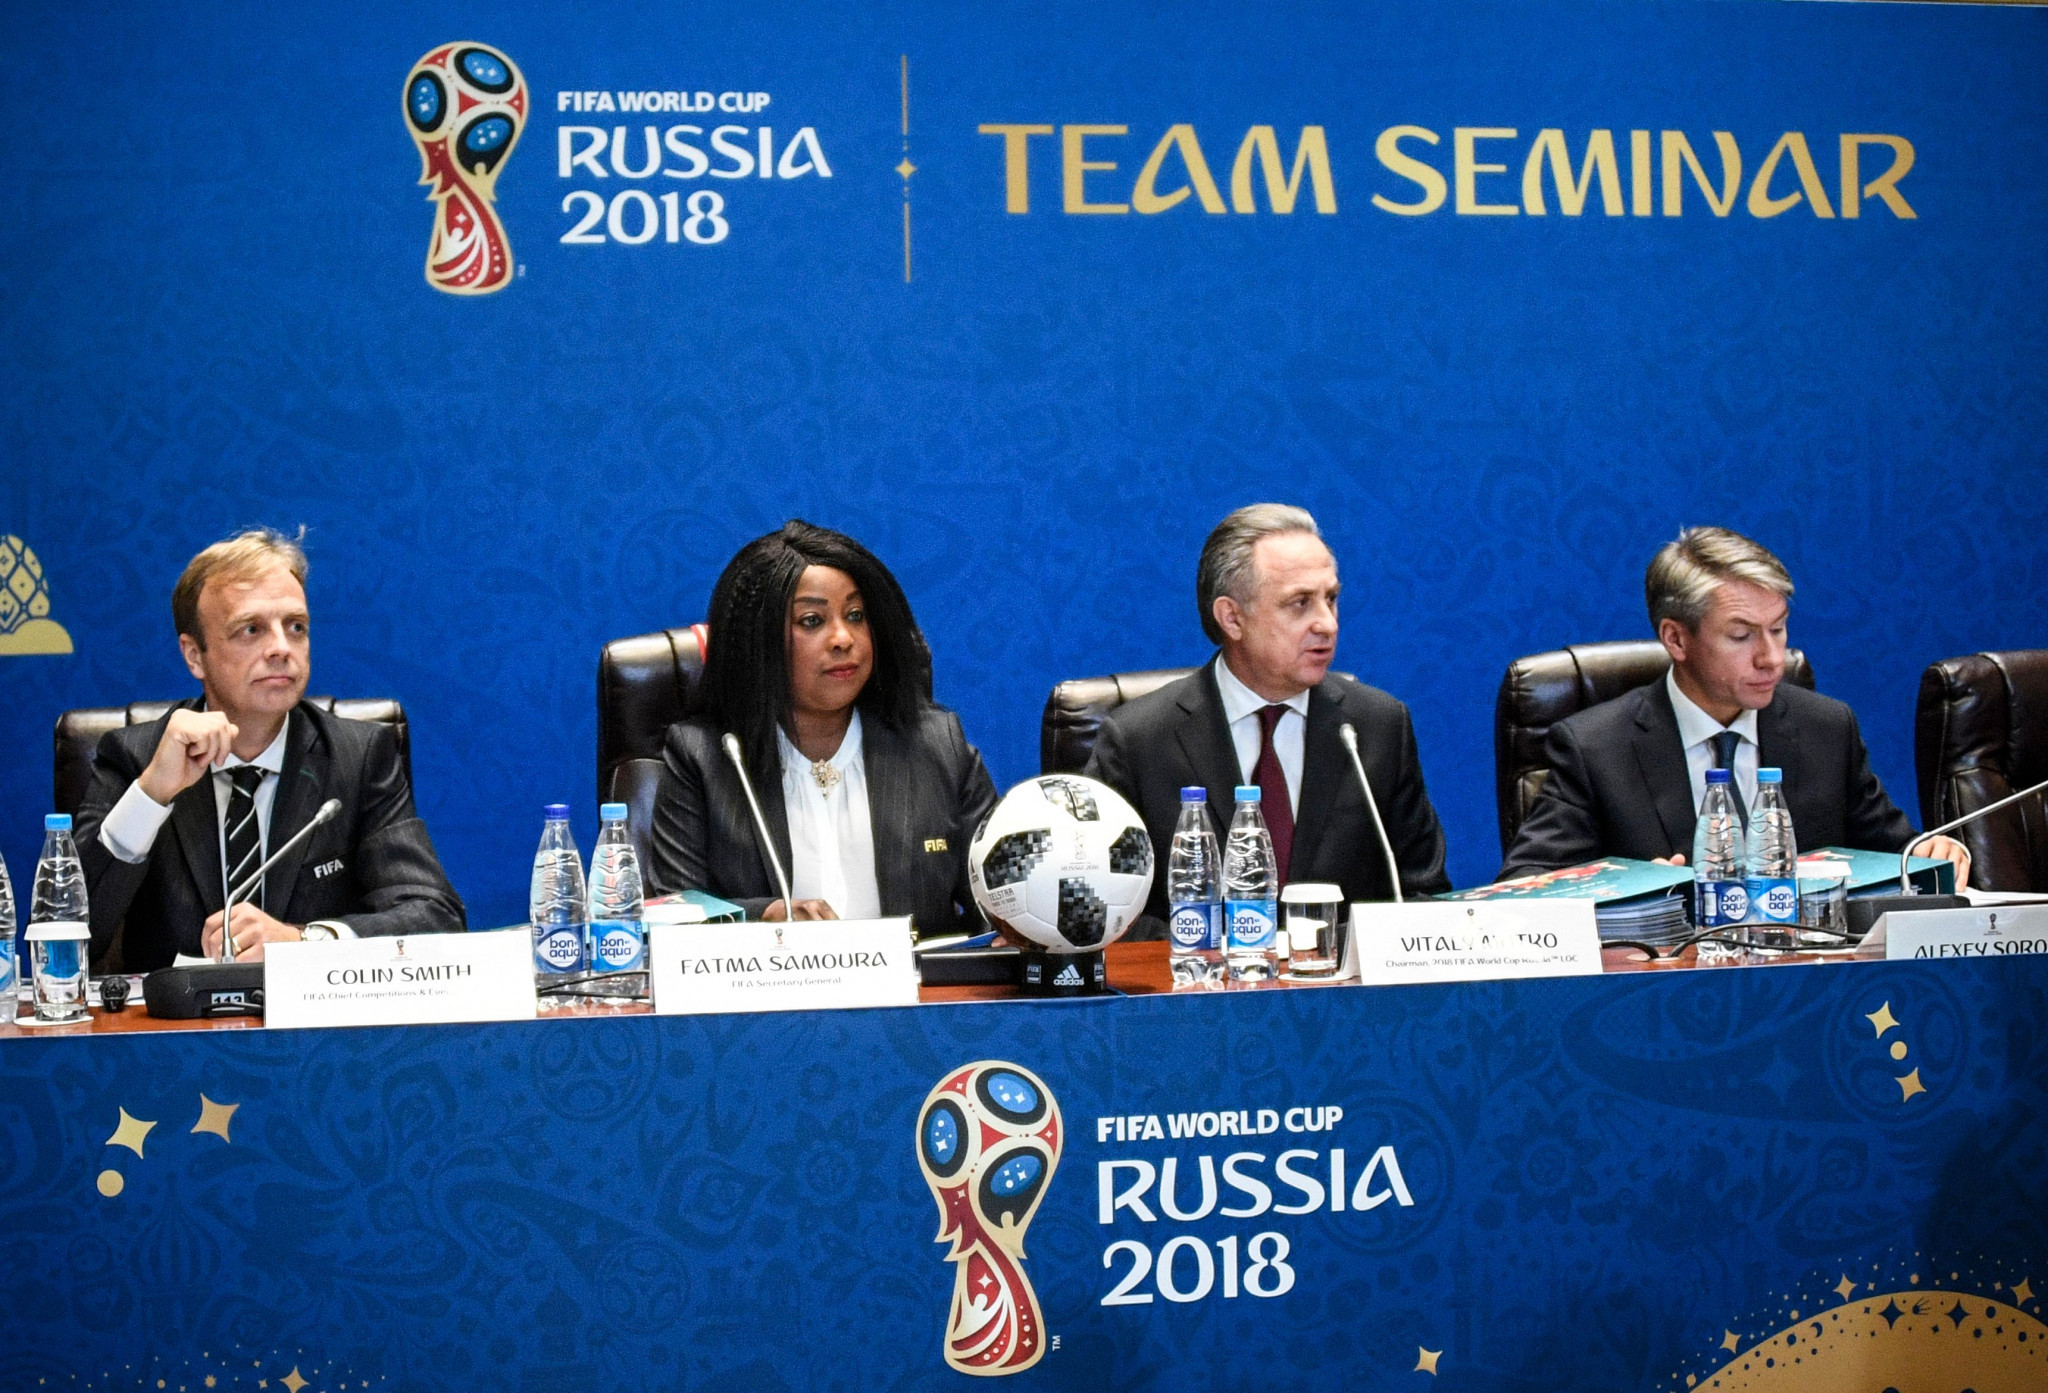 Alexei Sorokin, far right, is now officially the head of the Russia 2018 Organising Committee ©Getty Images